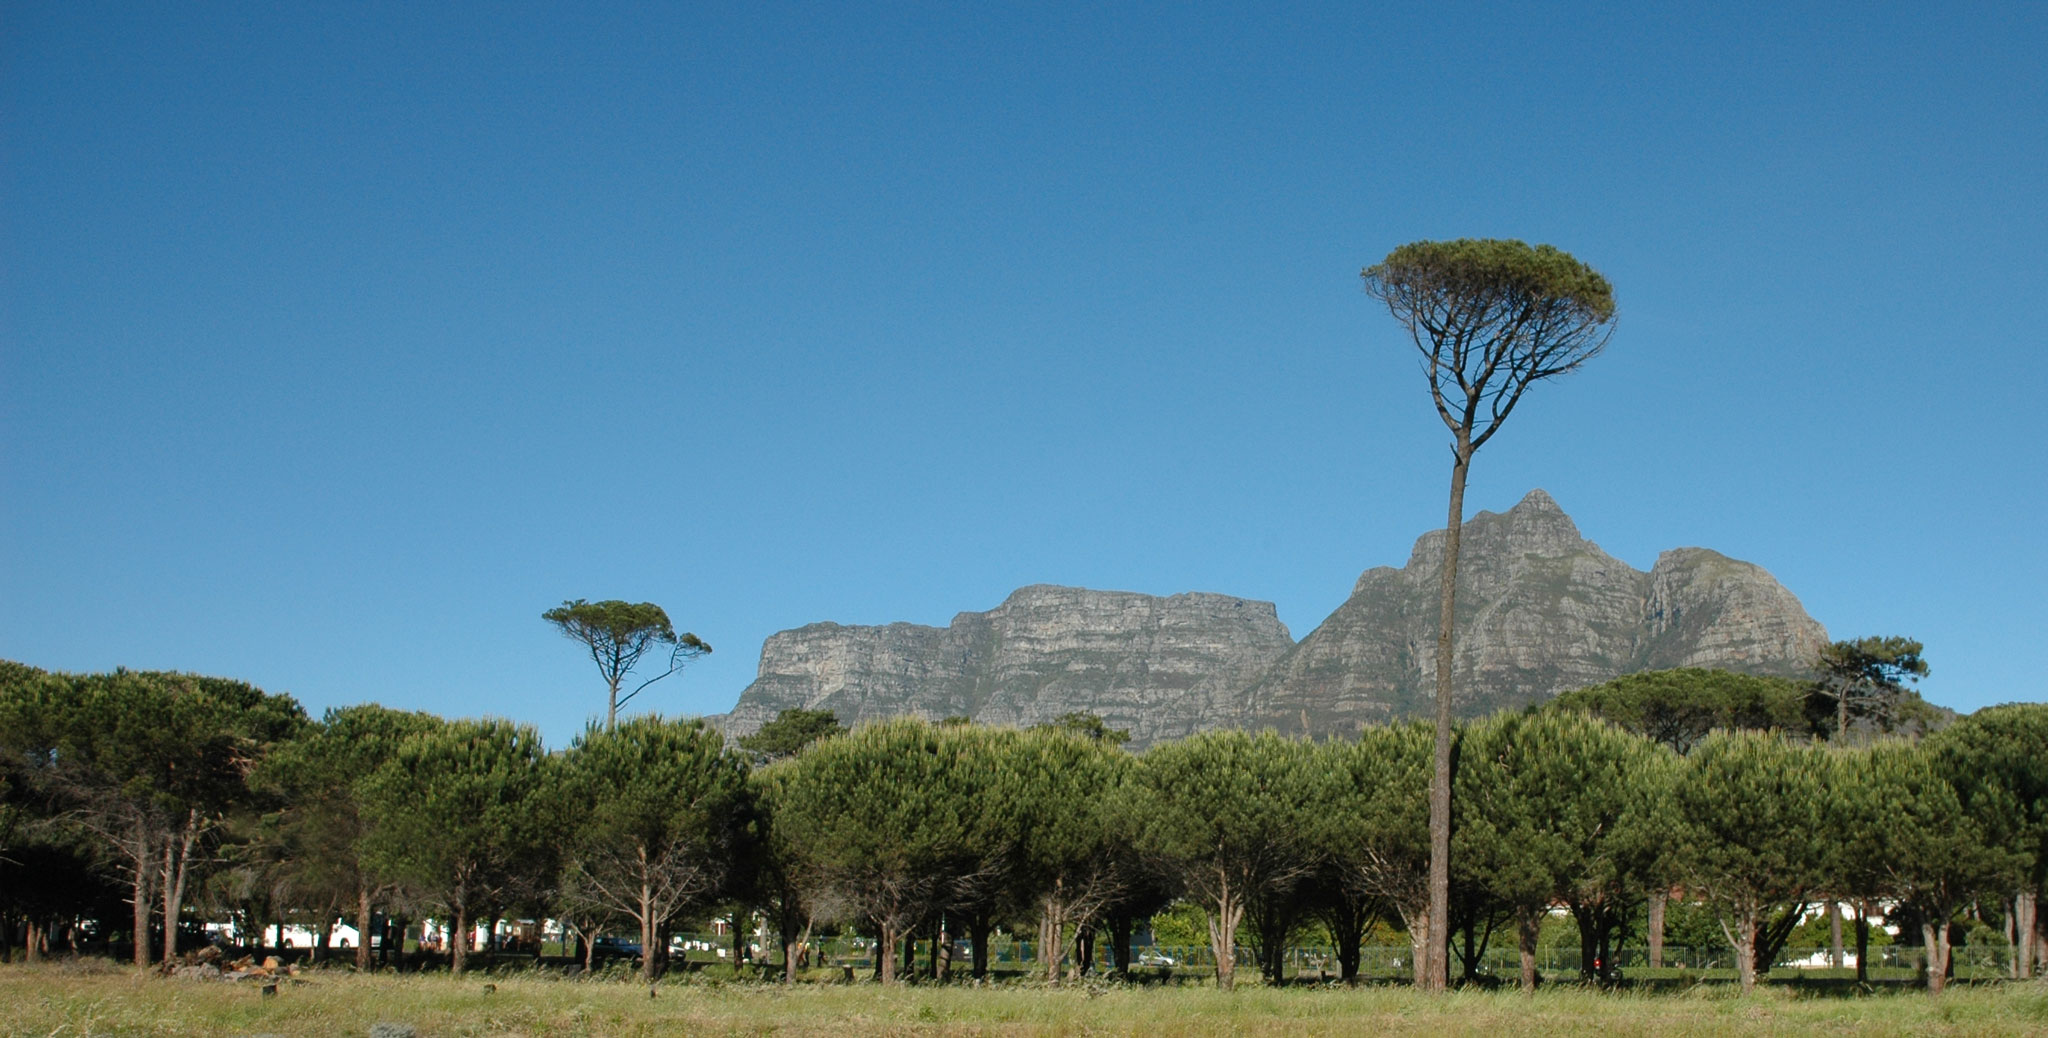 Trees on Rondebosch Commons looking towards Table Mountain